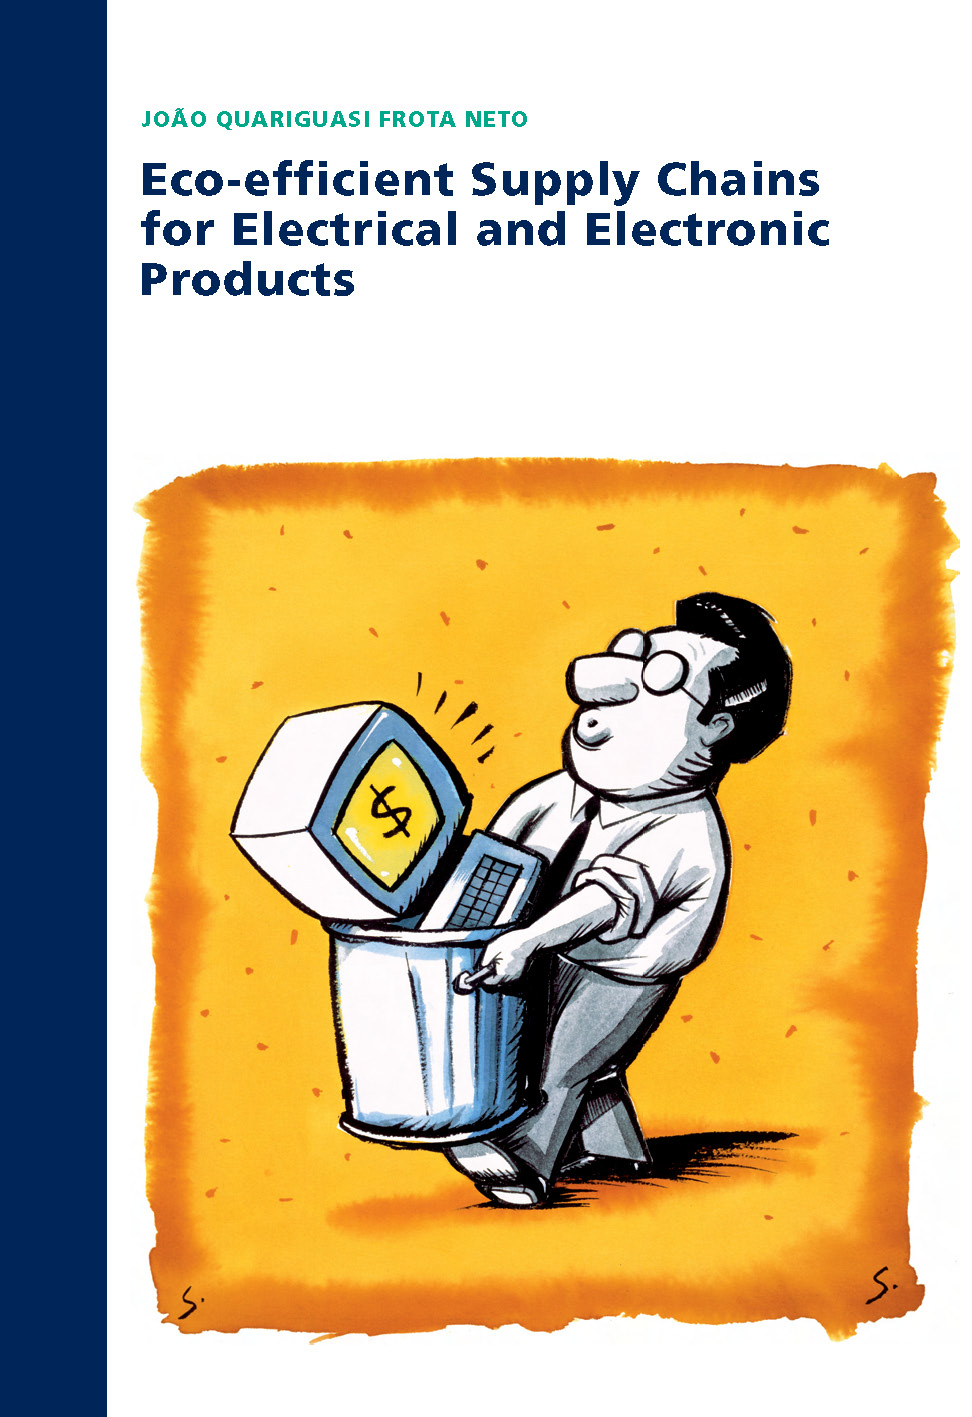 Eco-efficient Supply Chains for Electrical and Electronic Products